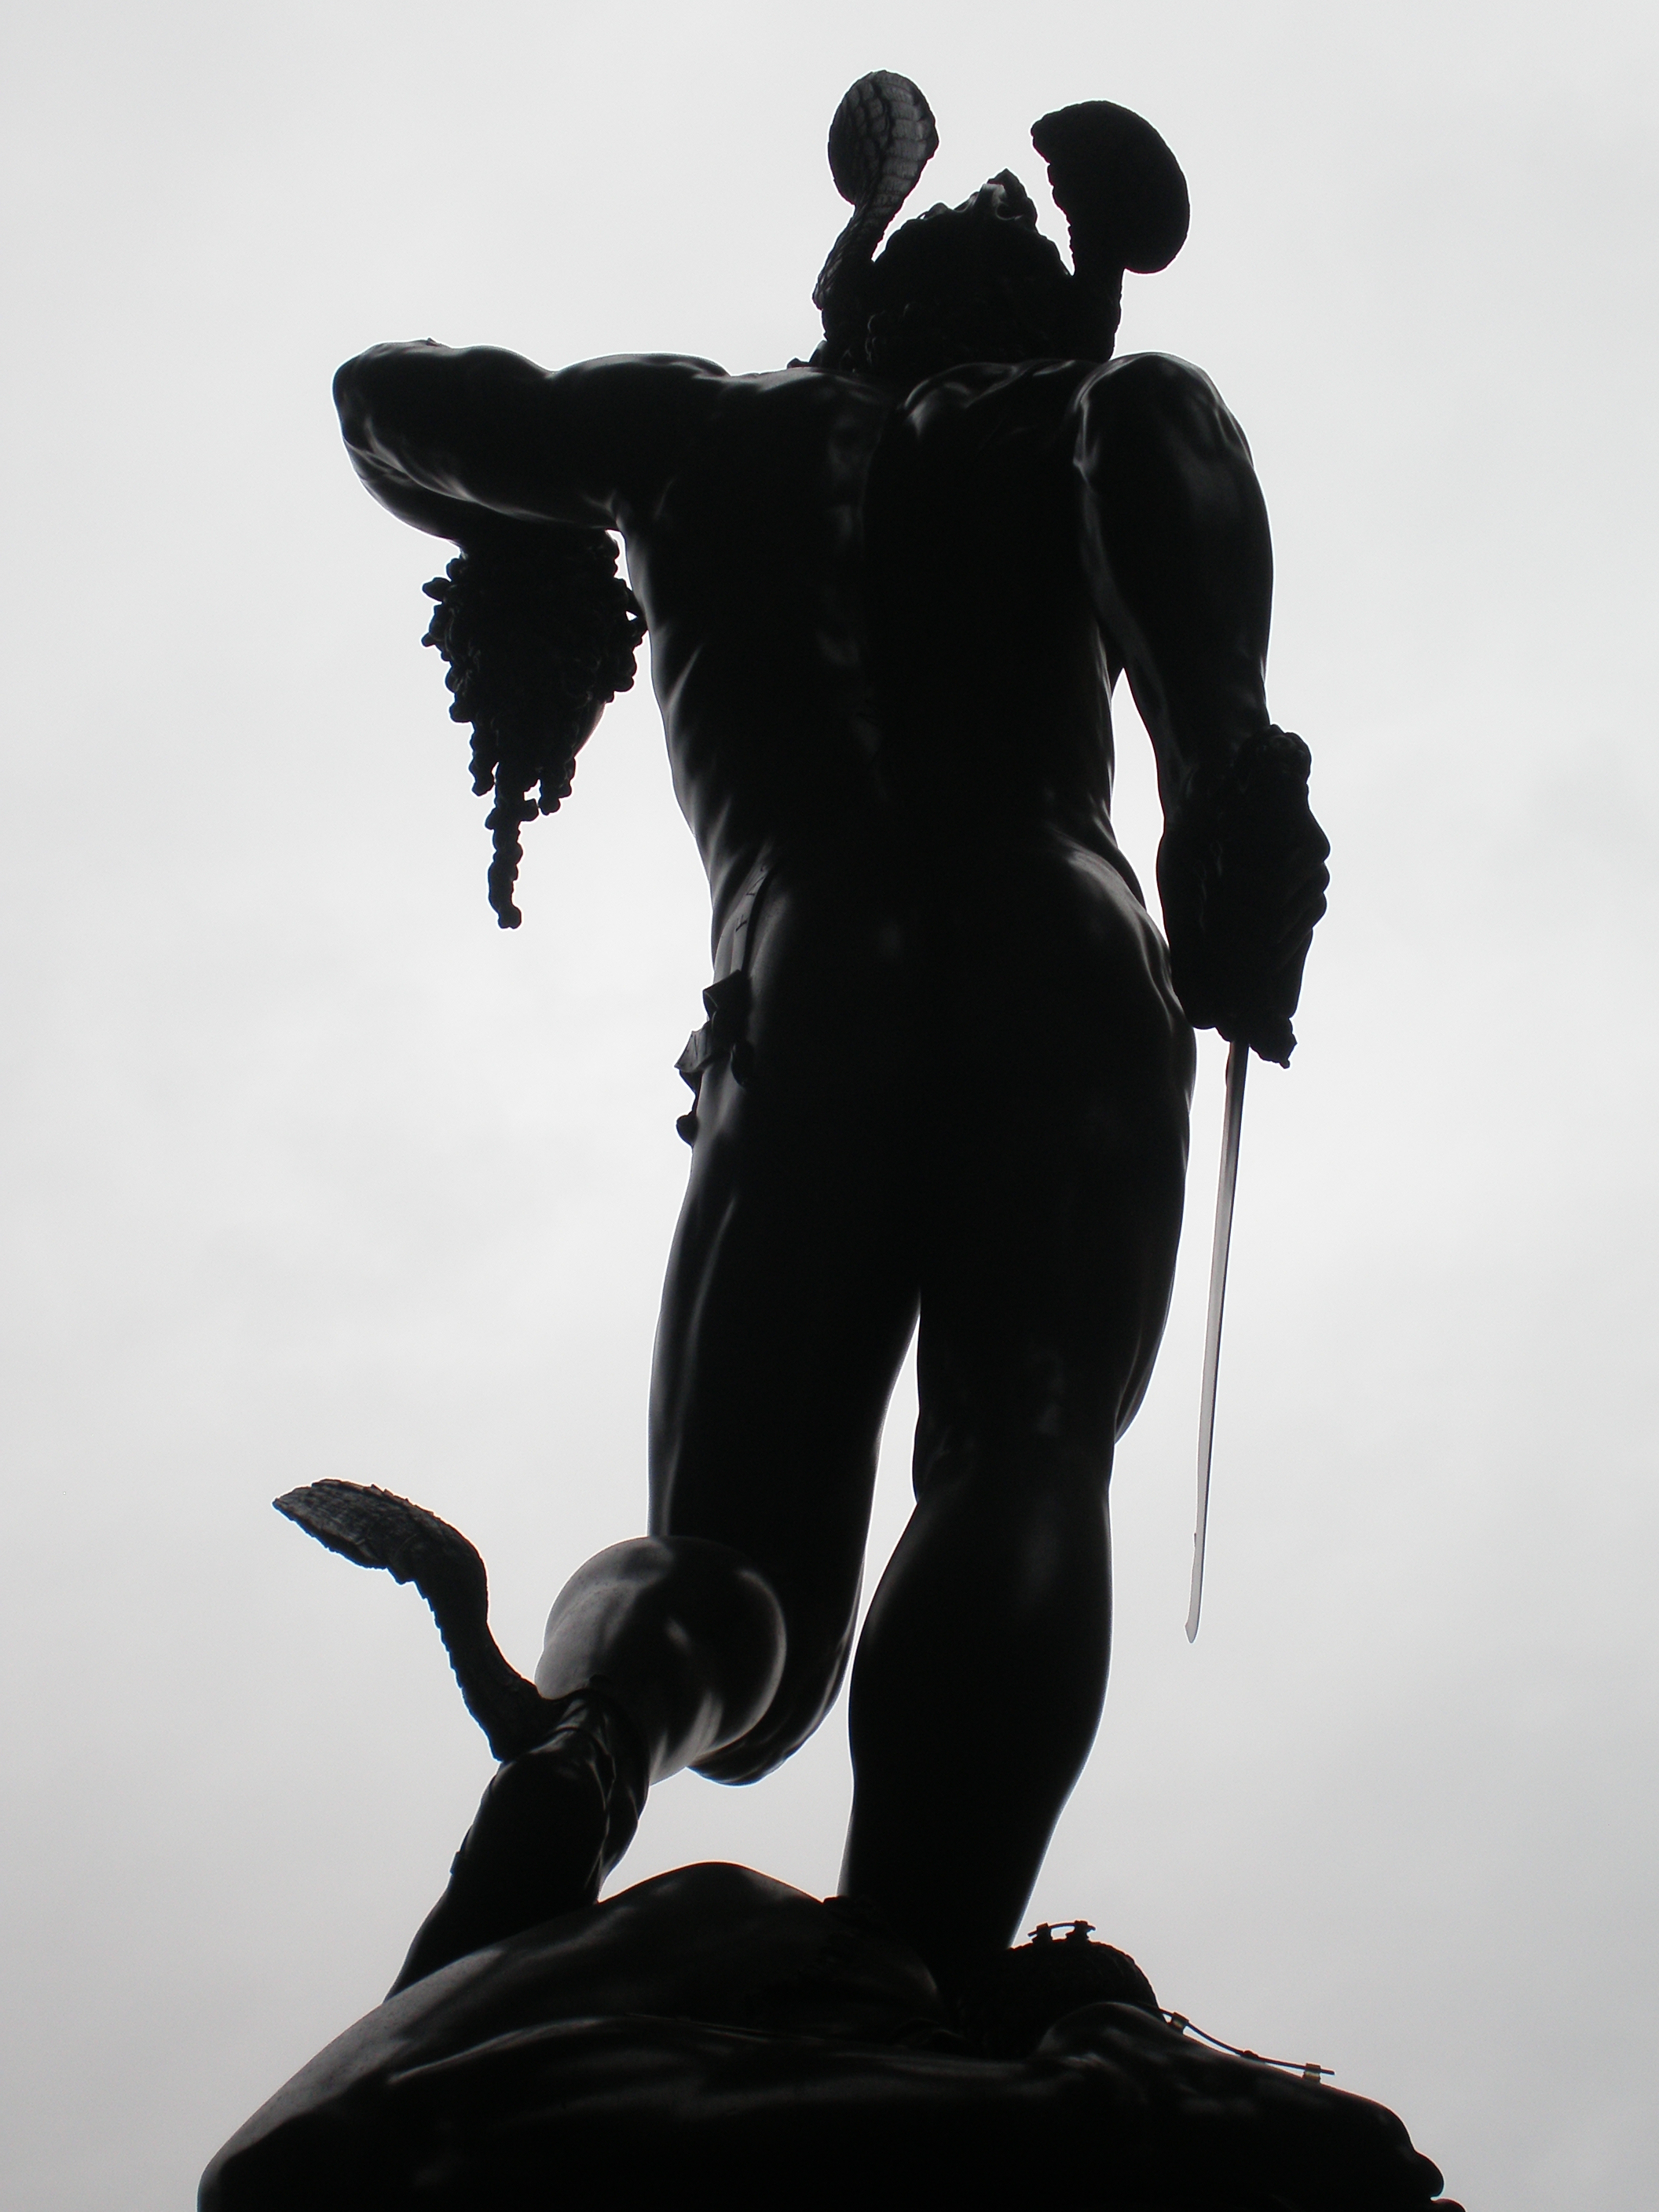 Perseus and Medusa statue in Florence